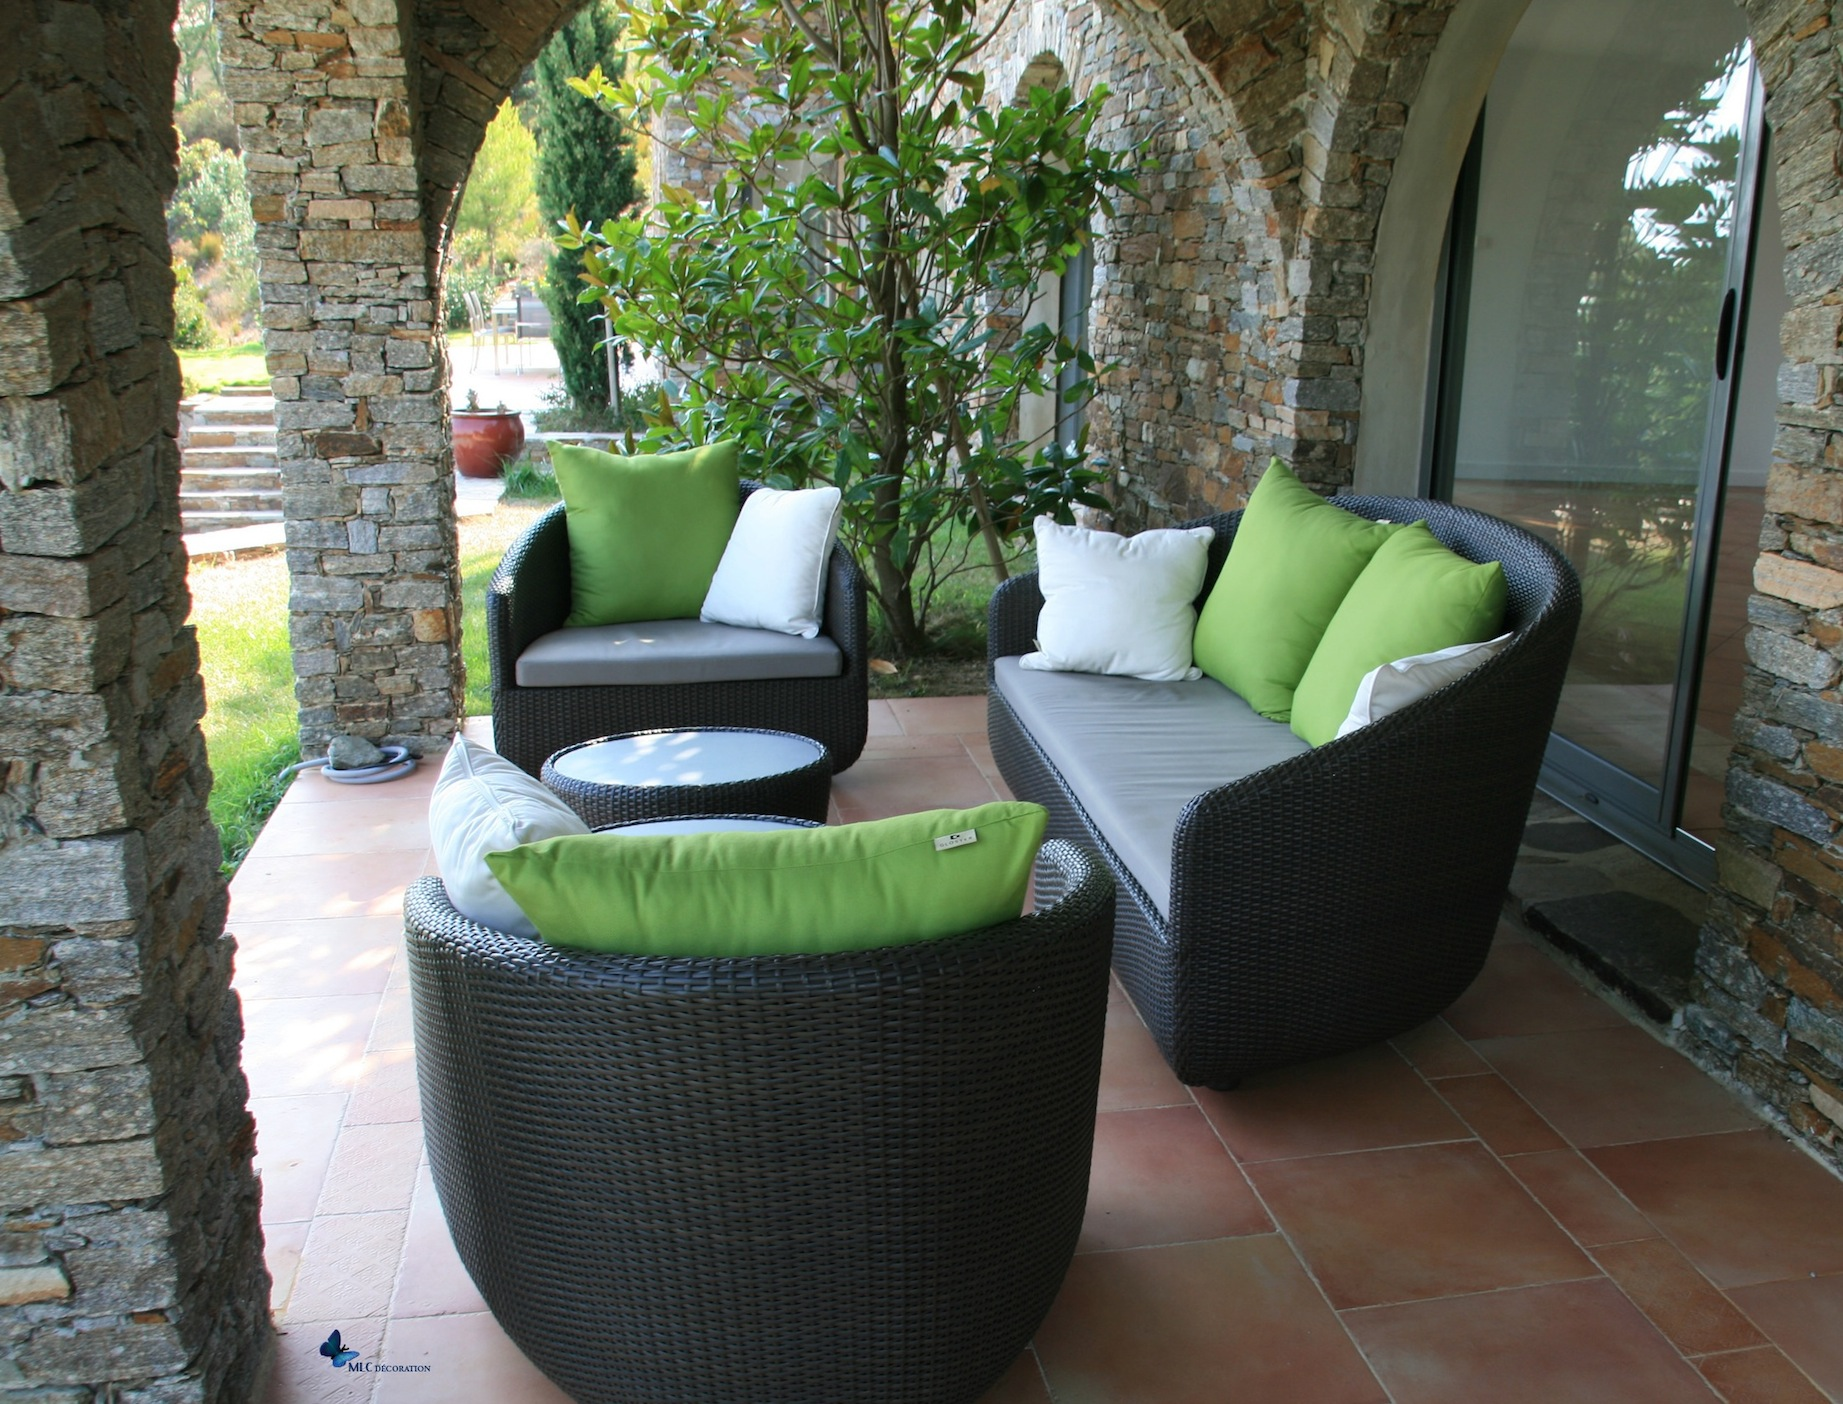 Canap ext rieur archives le blog d co de mlc - Decoration pour terrasse exterieur ...